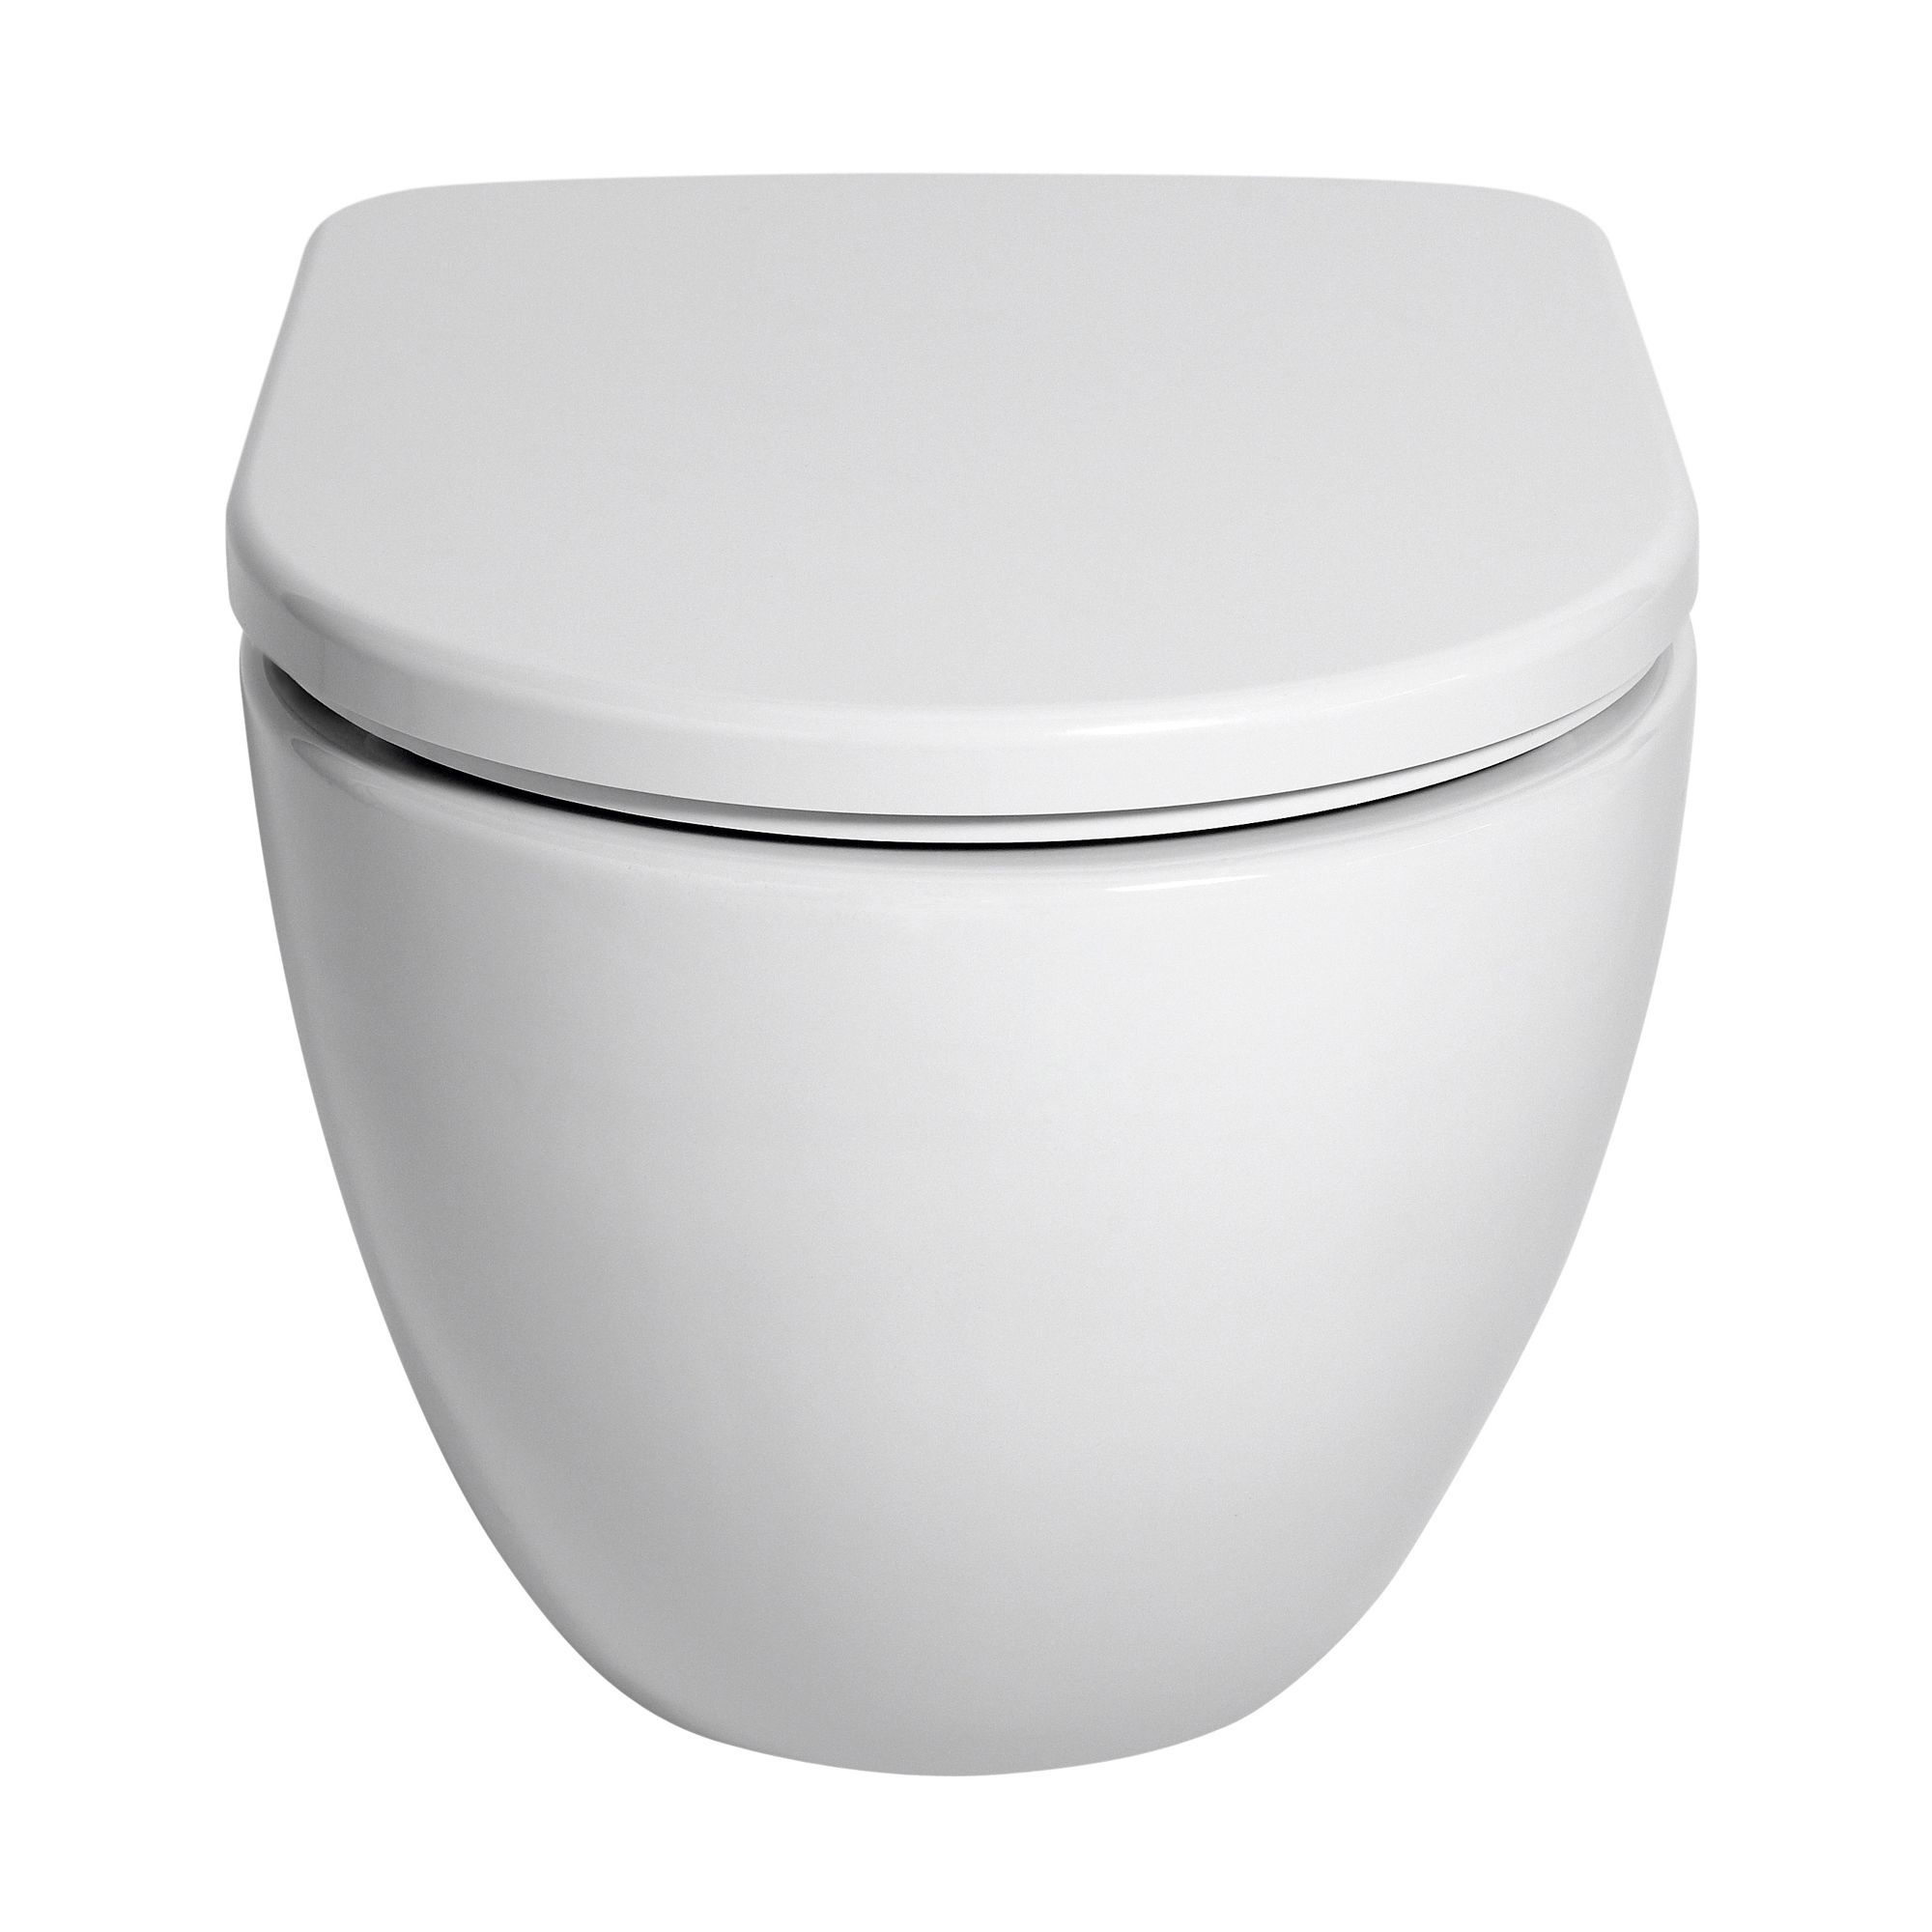 Cooke Lewis Helena Wall Hung Toilet With Soft Close Seat